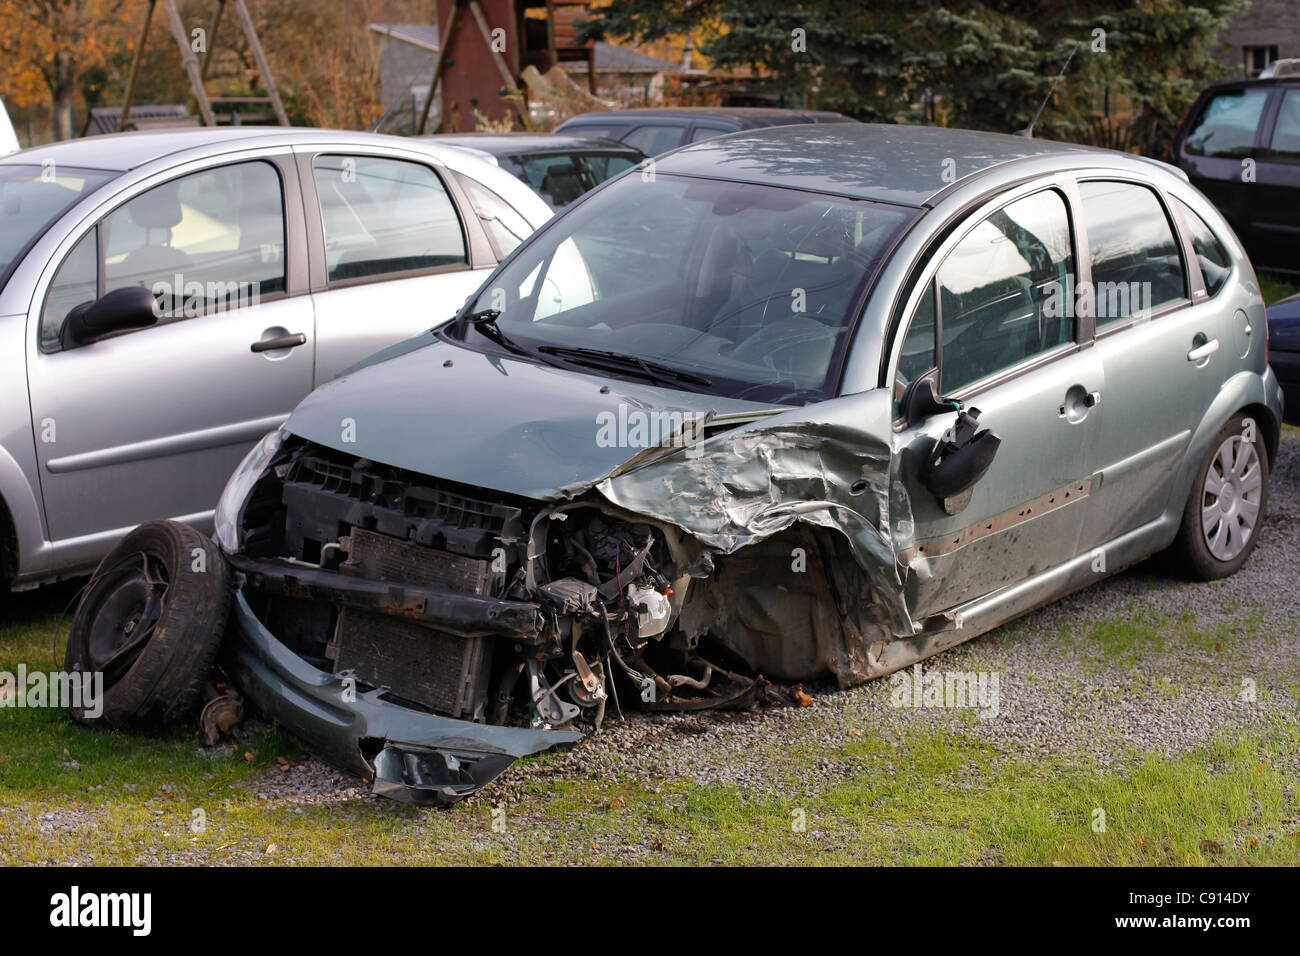 A crashed car - Stock Image